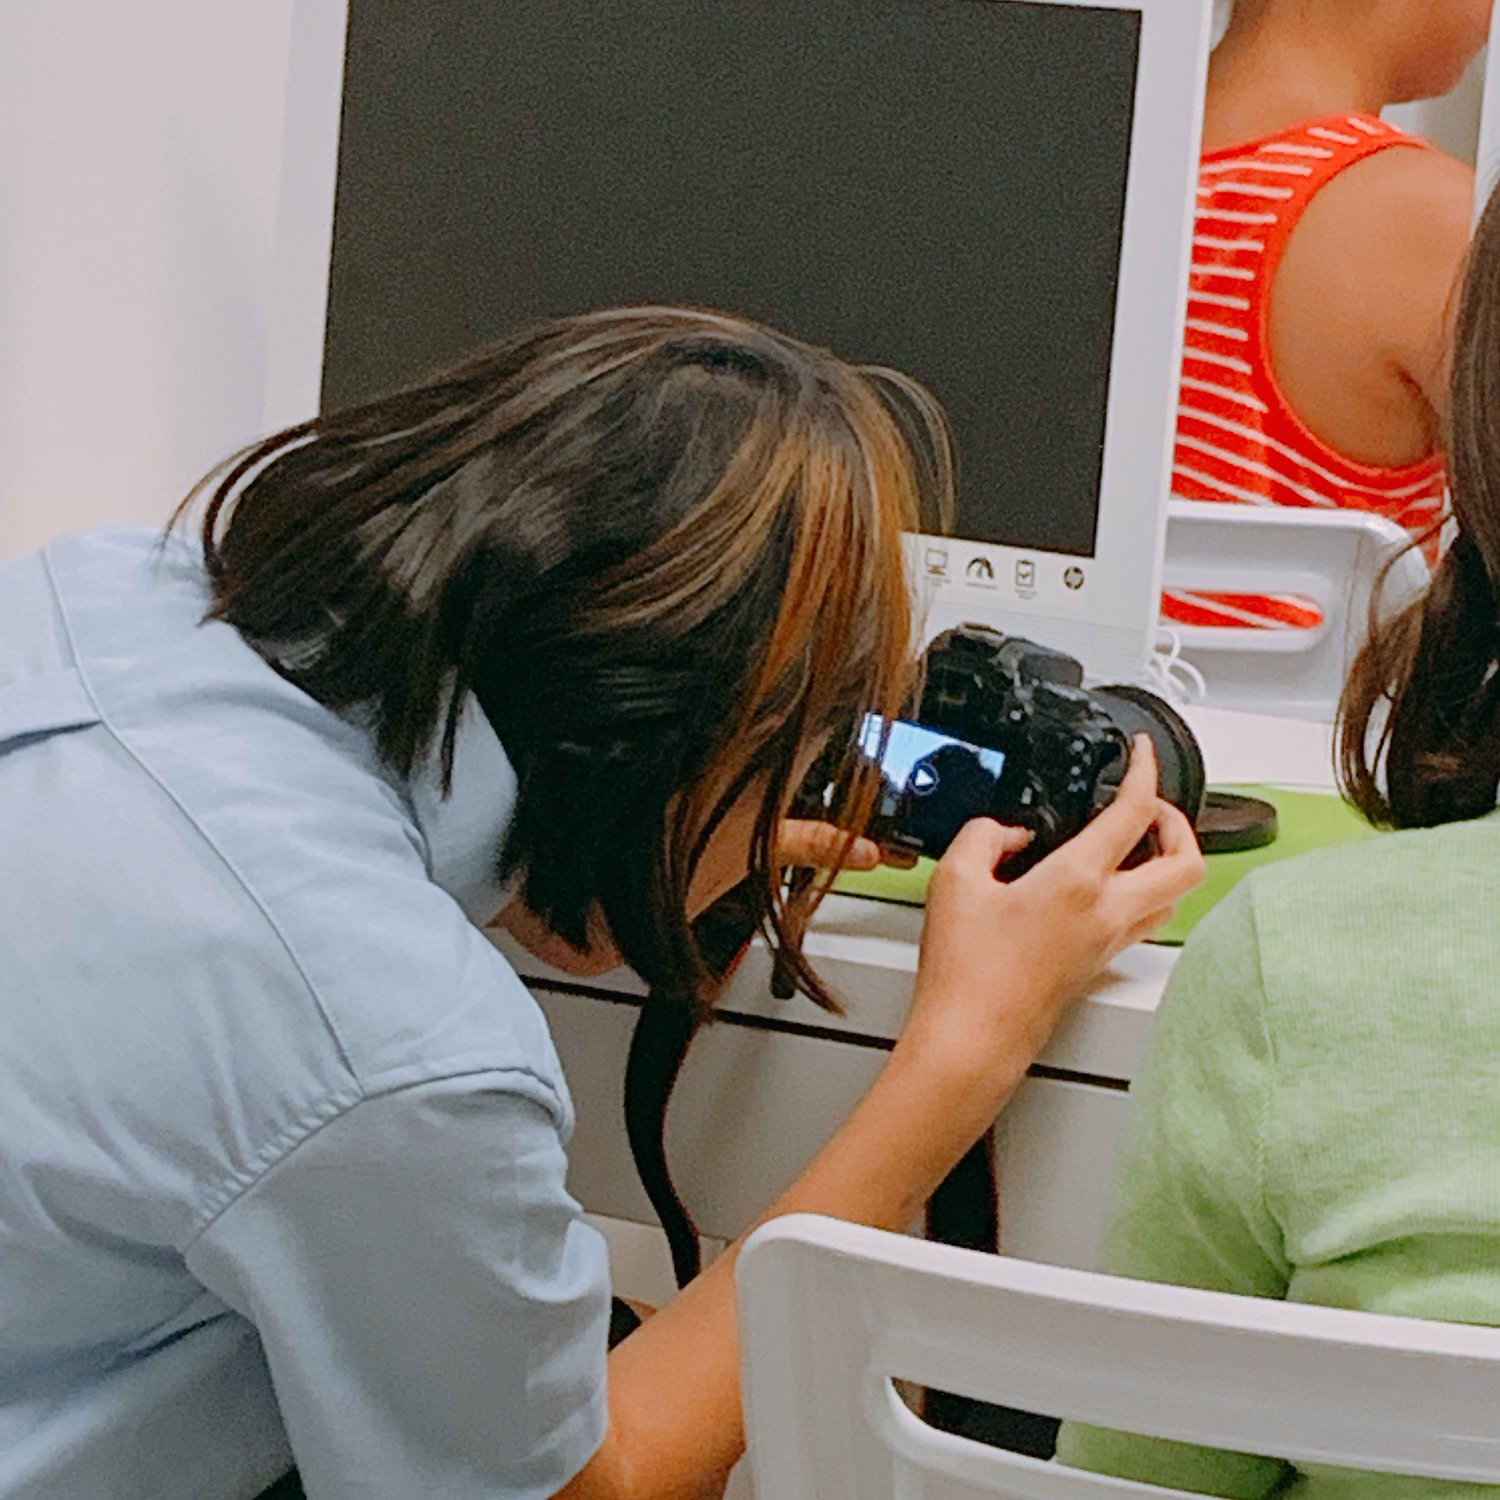 PHOTOGRAPHY CLASS - Students will learn how to utilize digital camera with adjustments to lighting and props such as fabric to take self portraitures and create film.